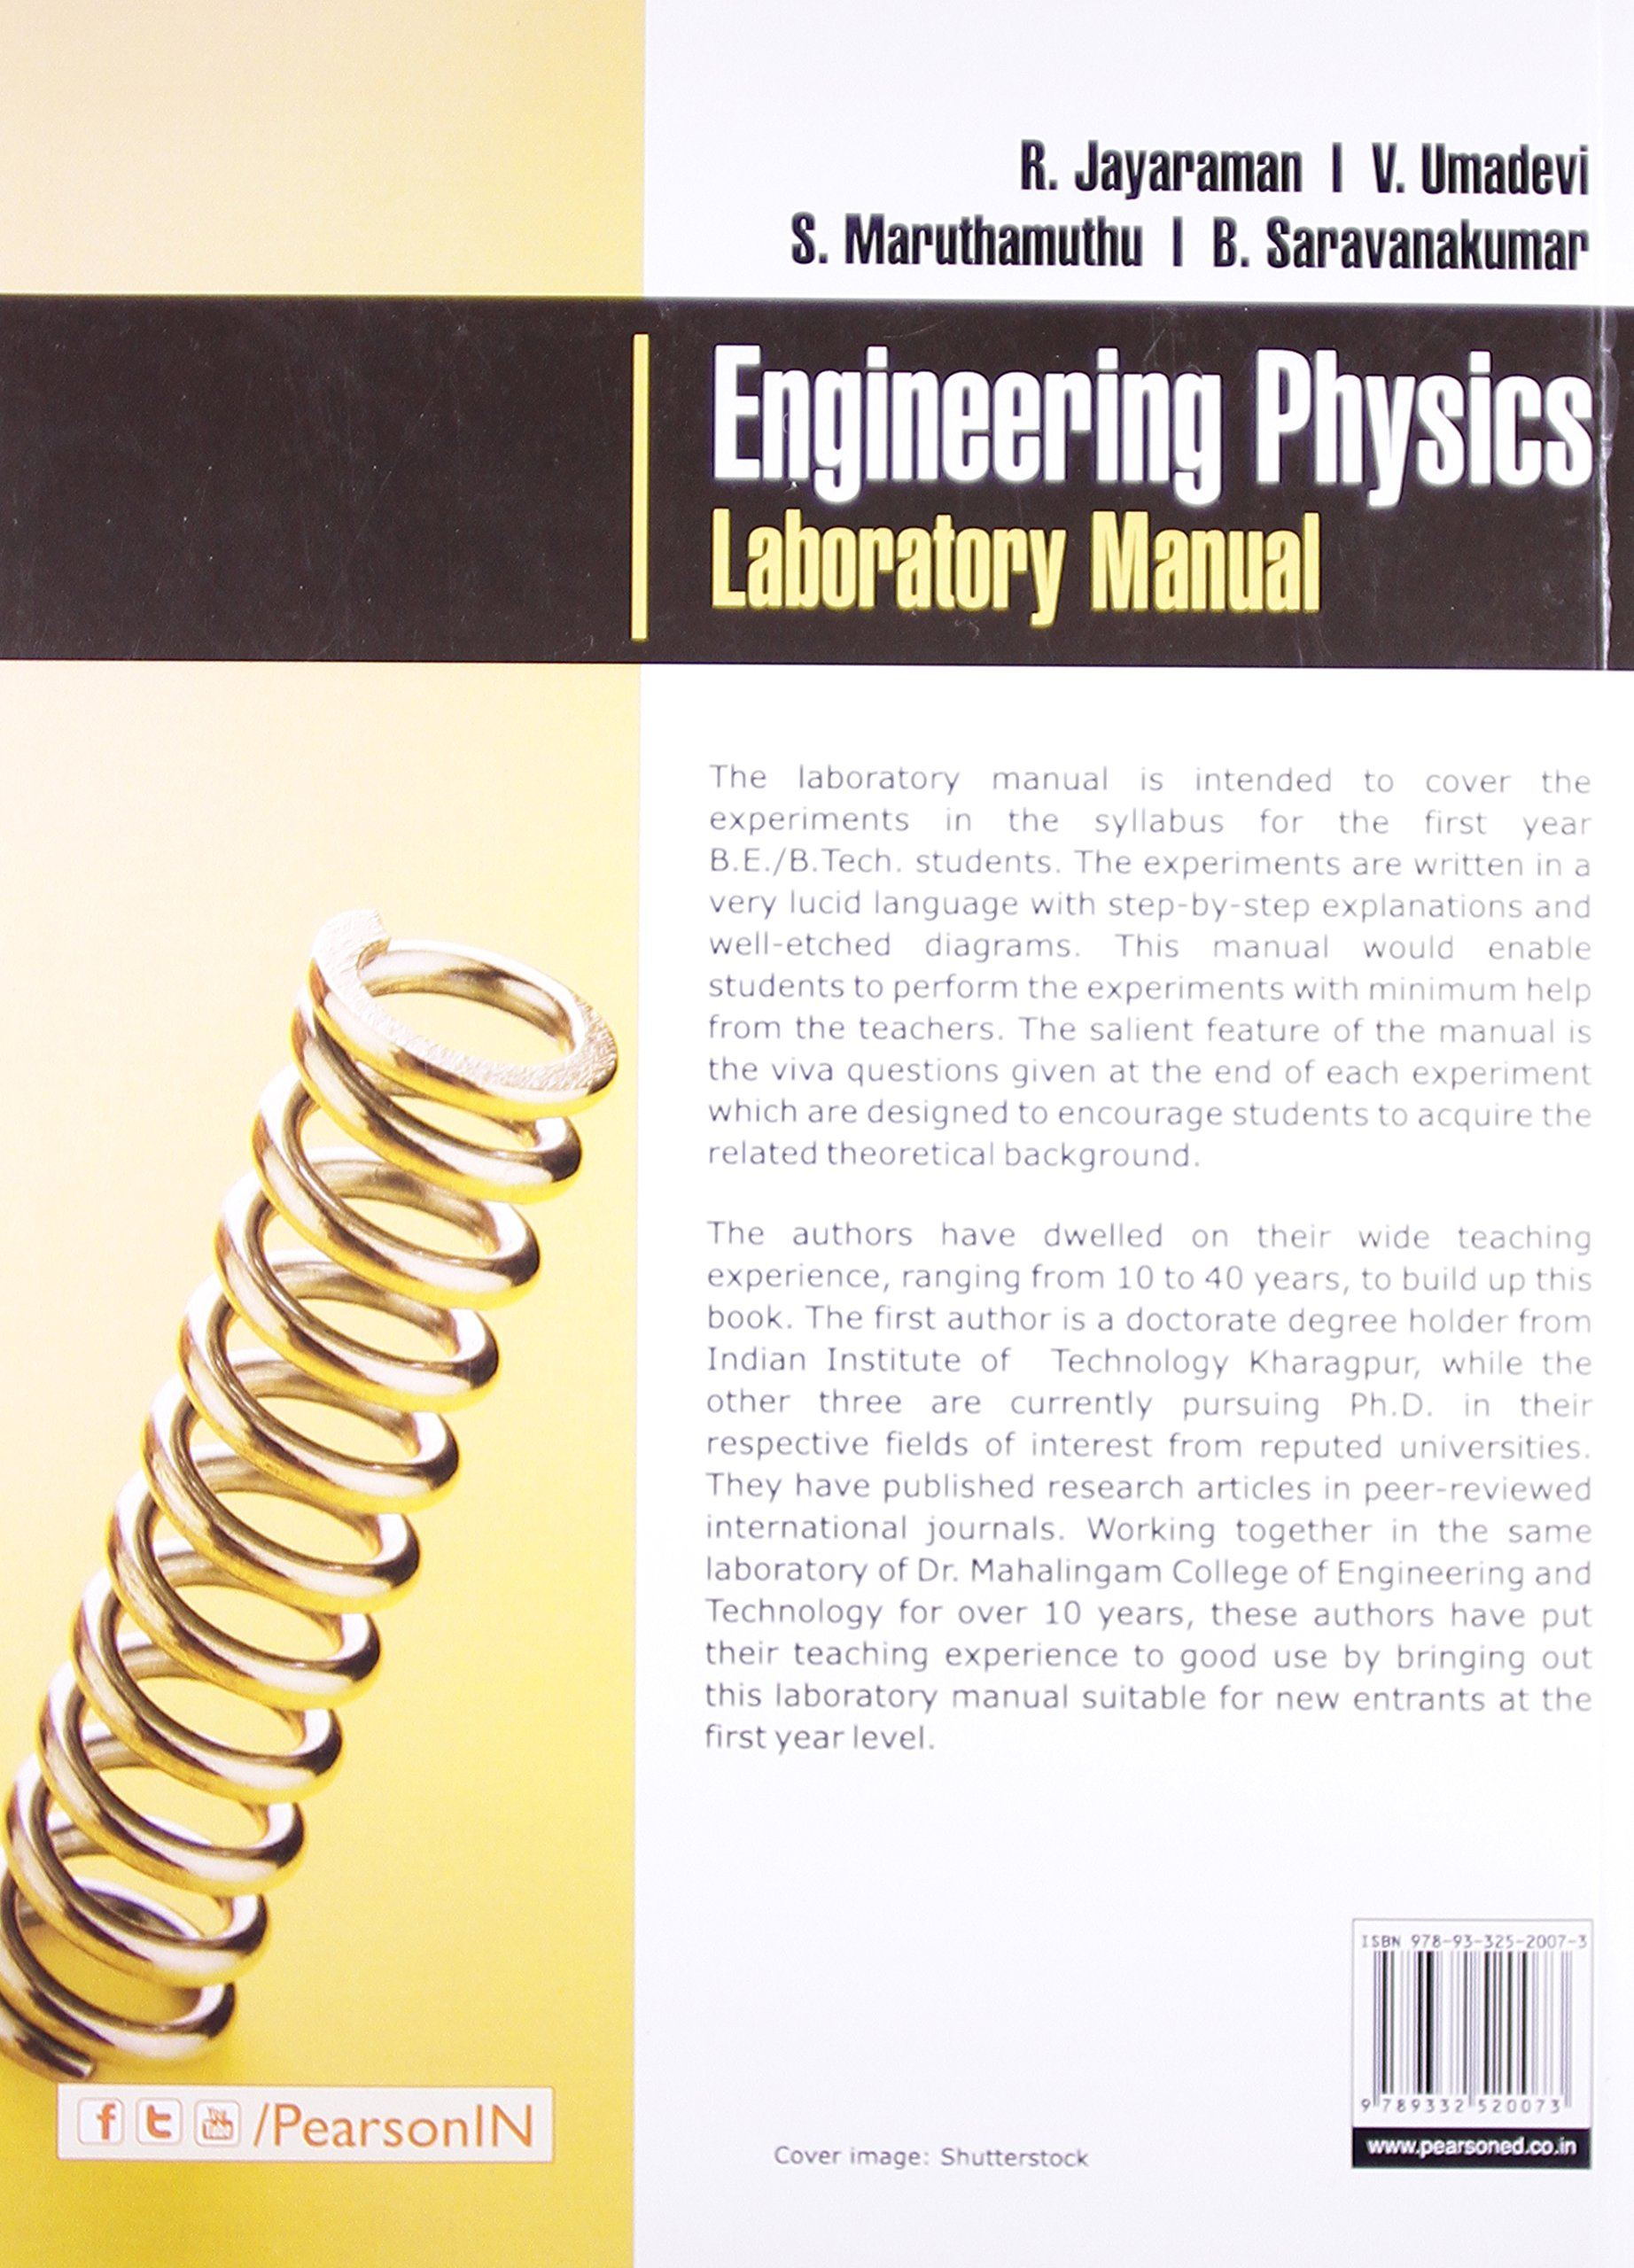 engineering physics laboratory manual jayaraman 9789332520073 rh amazon com engineering physics lab manual for first year ktu engineering physics lab manual for first year ktu